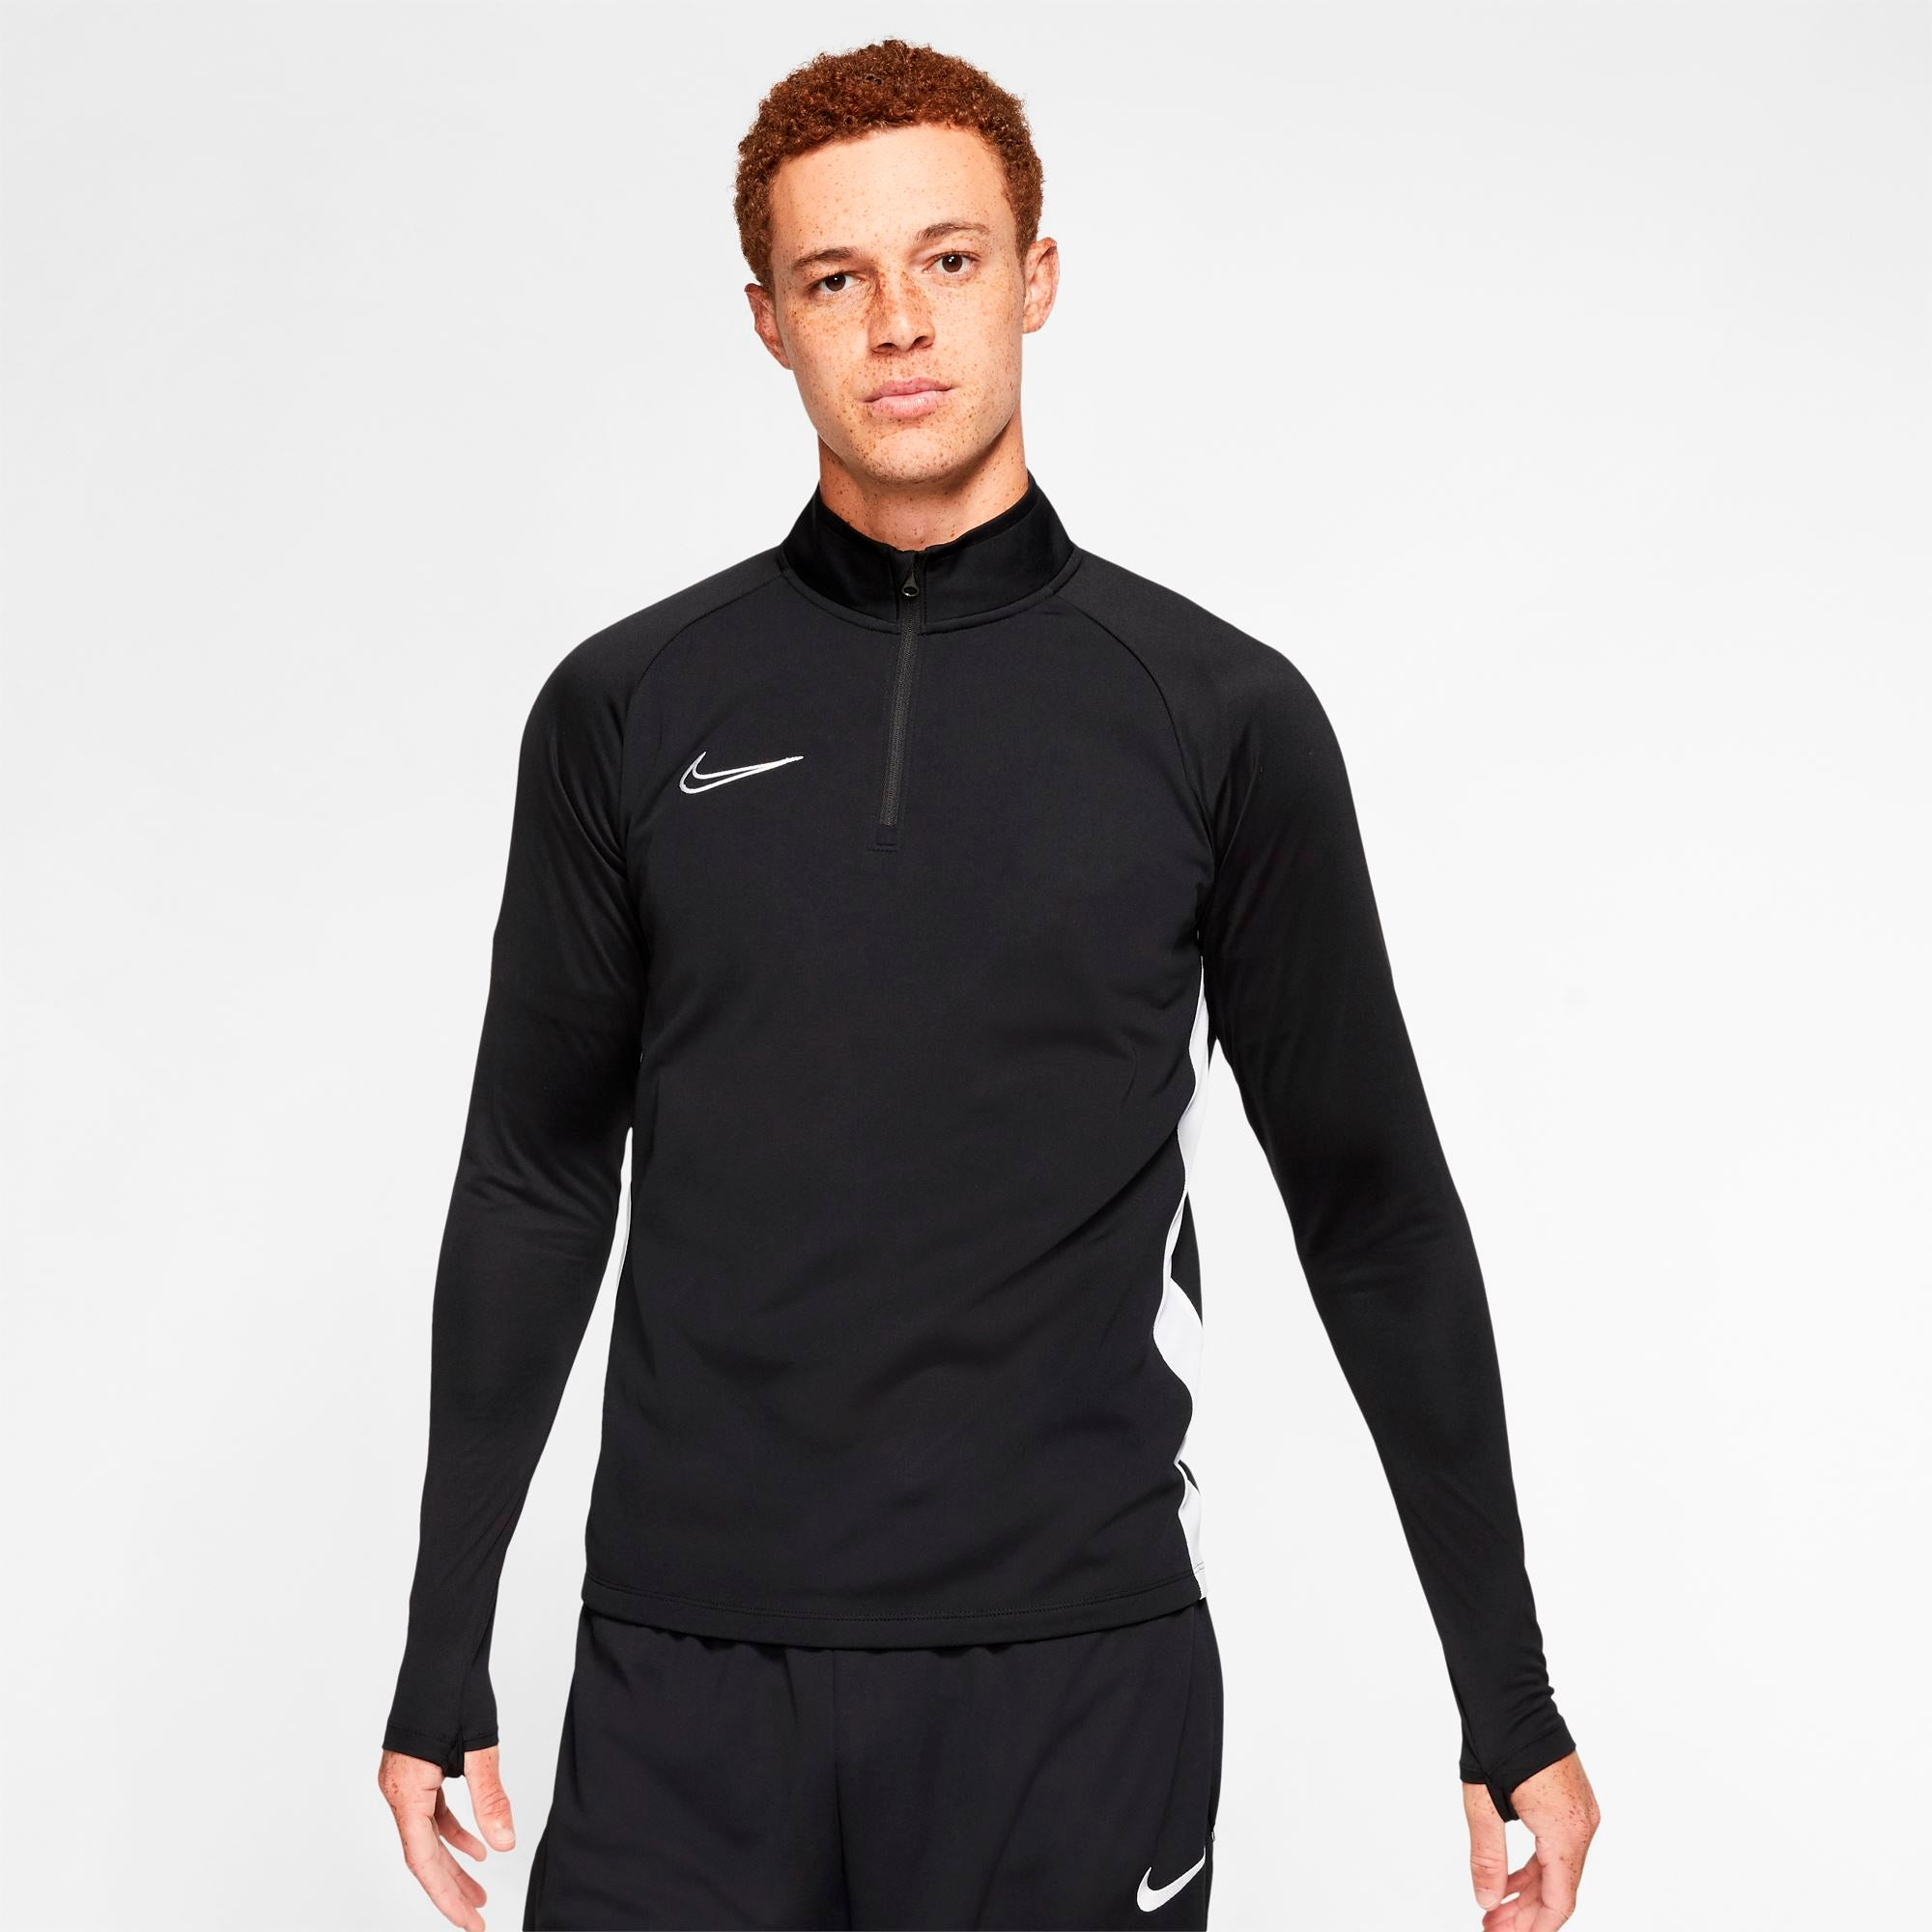 Nike Mens Dri-FIT Academy Soccer Drill Top - Black/White/White SP-ApparelTees-Mens Nike